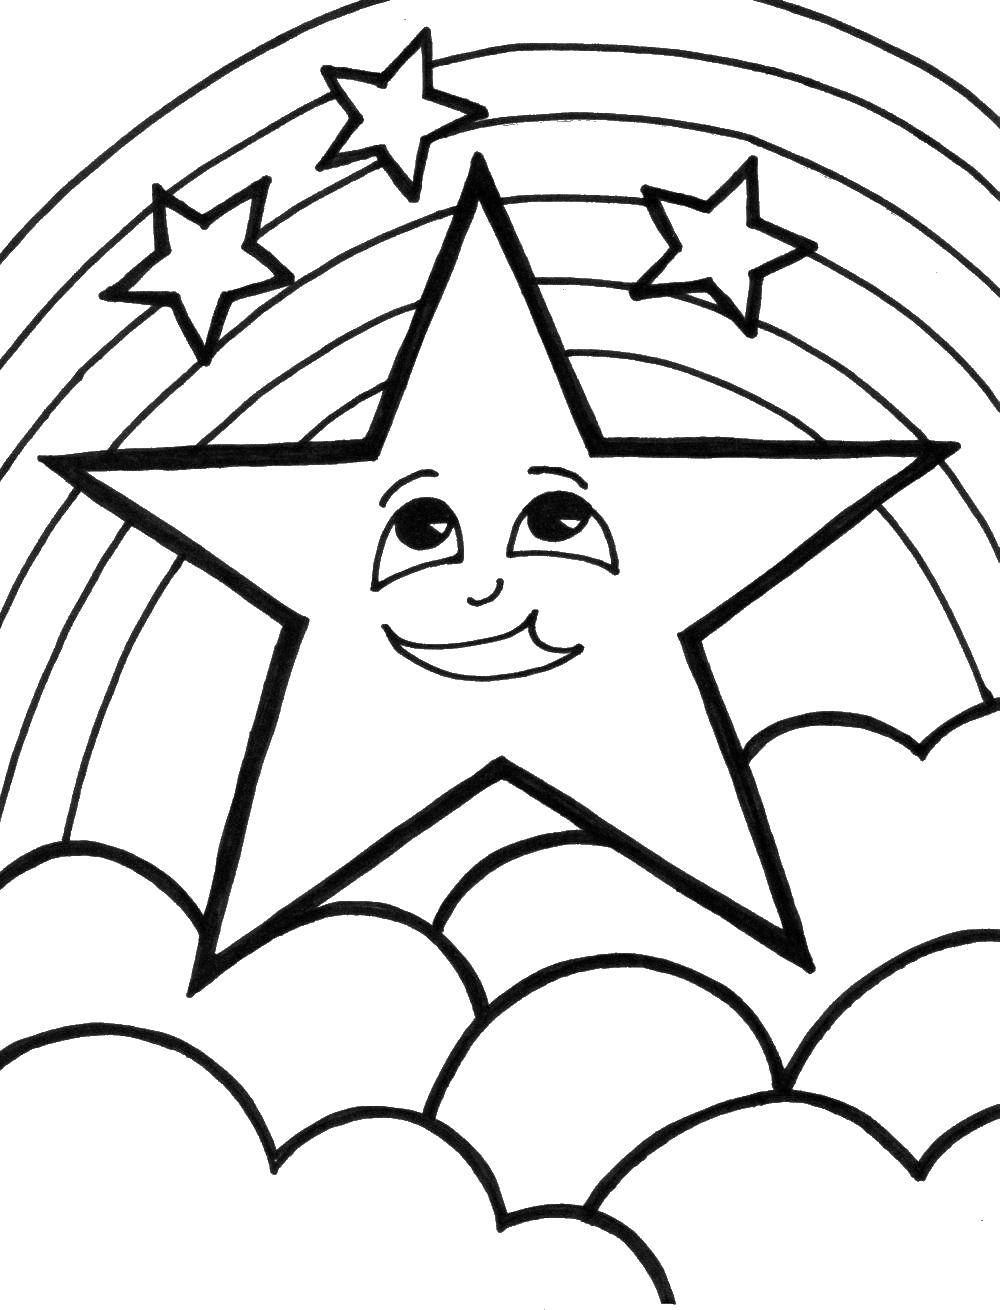 Coloring sheet stars Download technique, robot.  Print ,Technique,